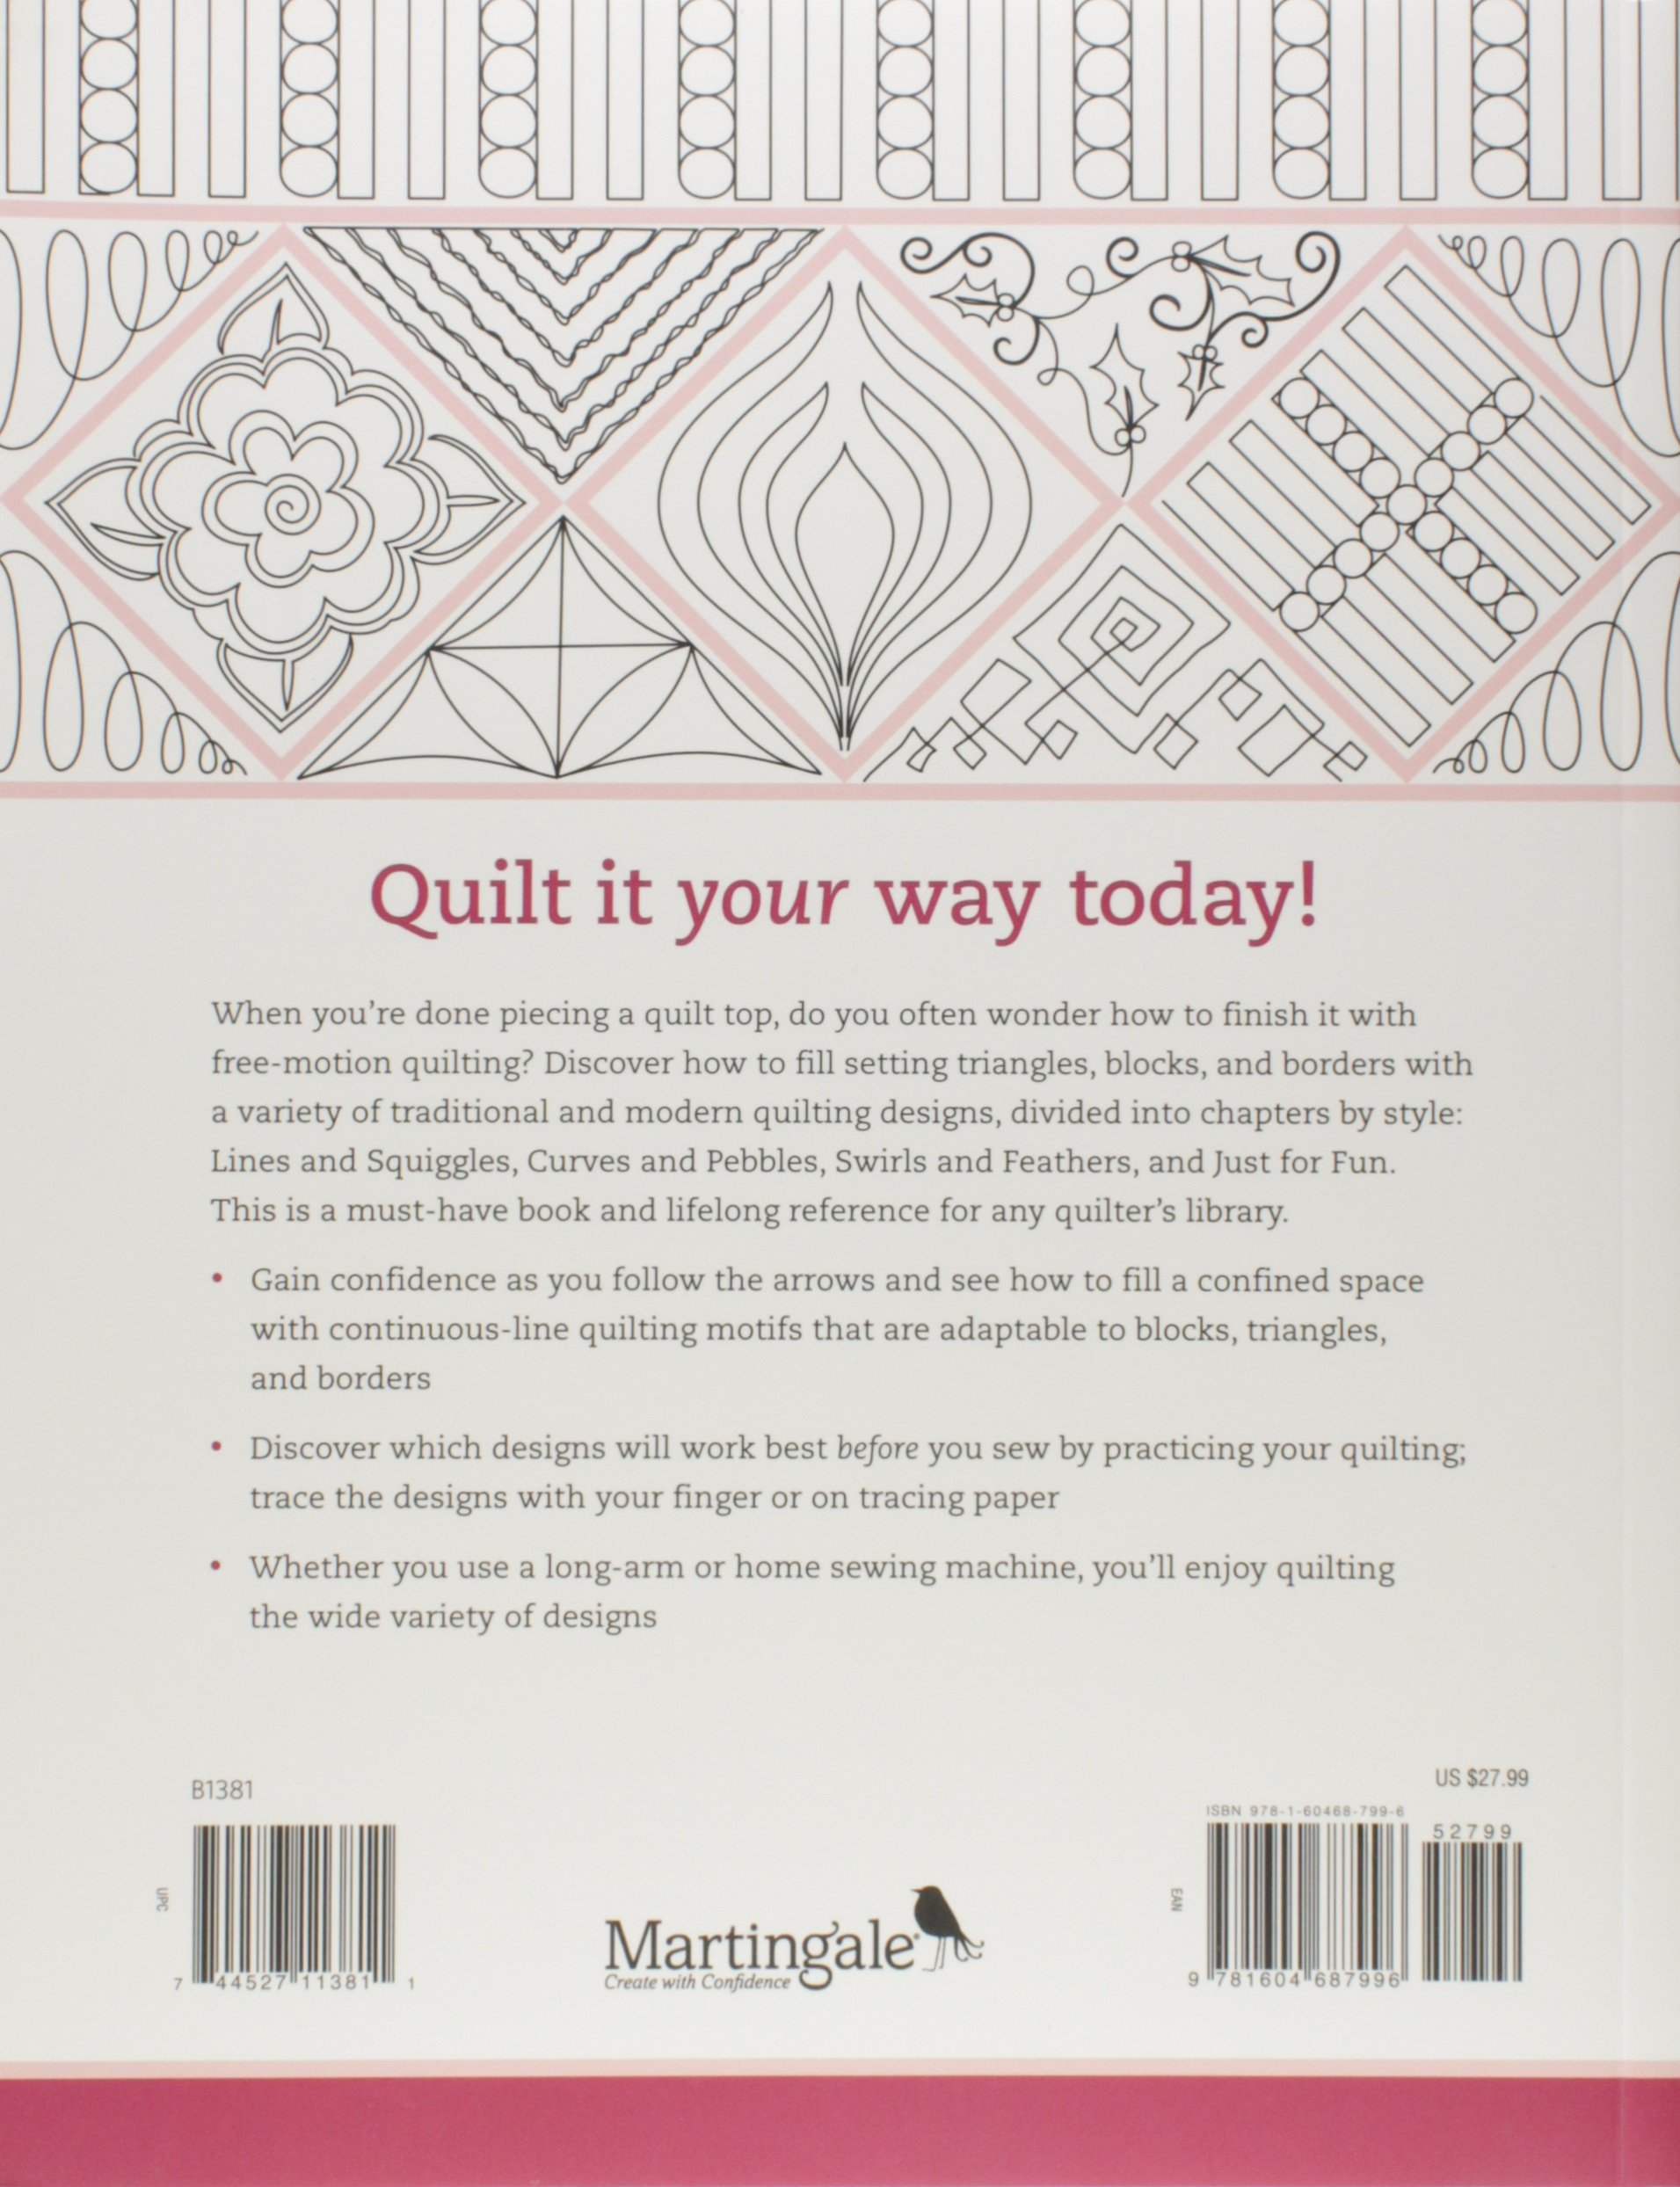 180 Doodle Quilting Designs: Free-Motion Ideas for Blocks, Borders ...